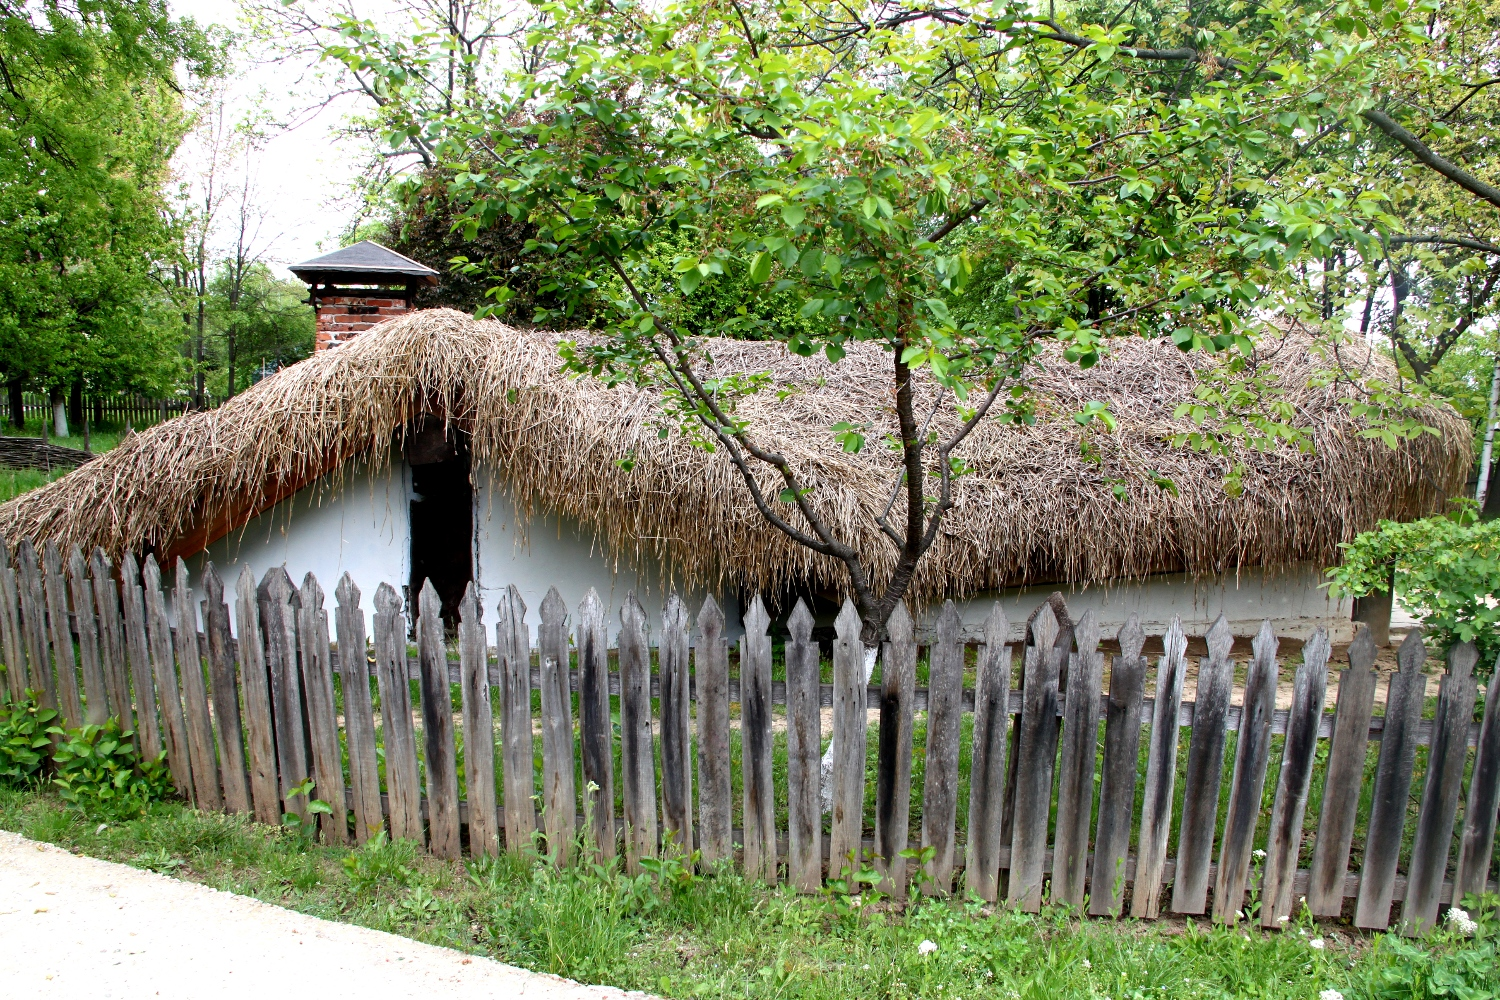 Half-buried houses in Romania - lateral view